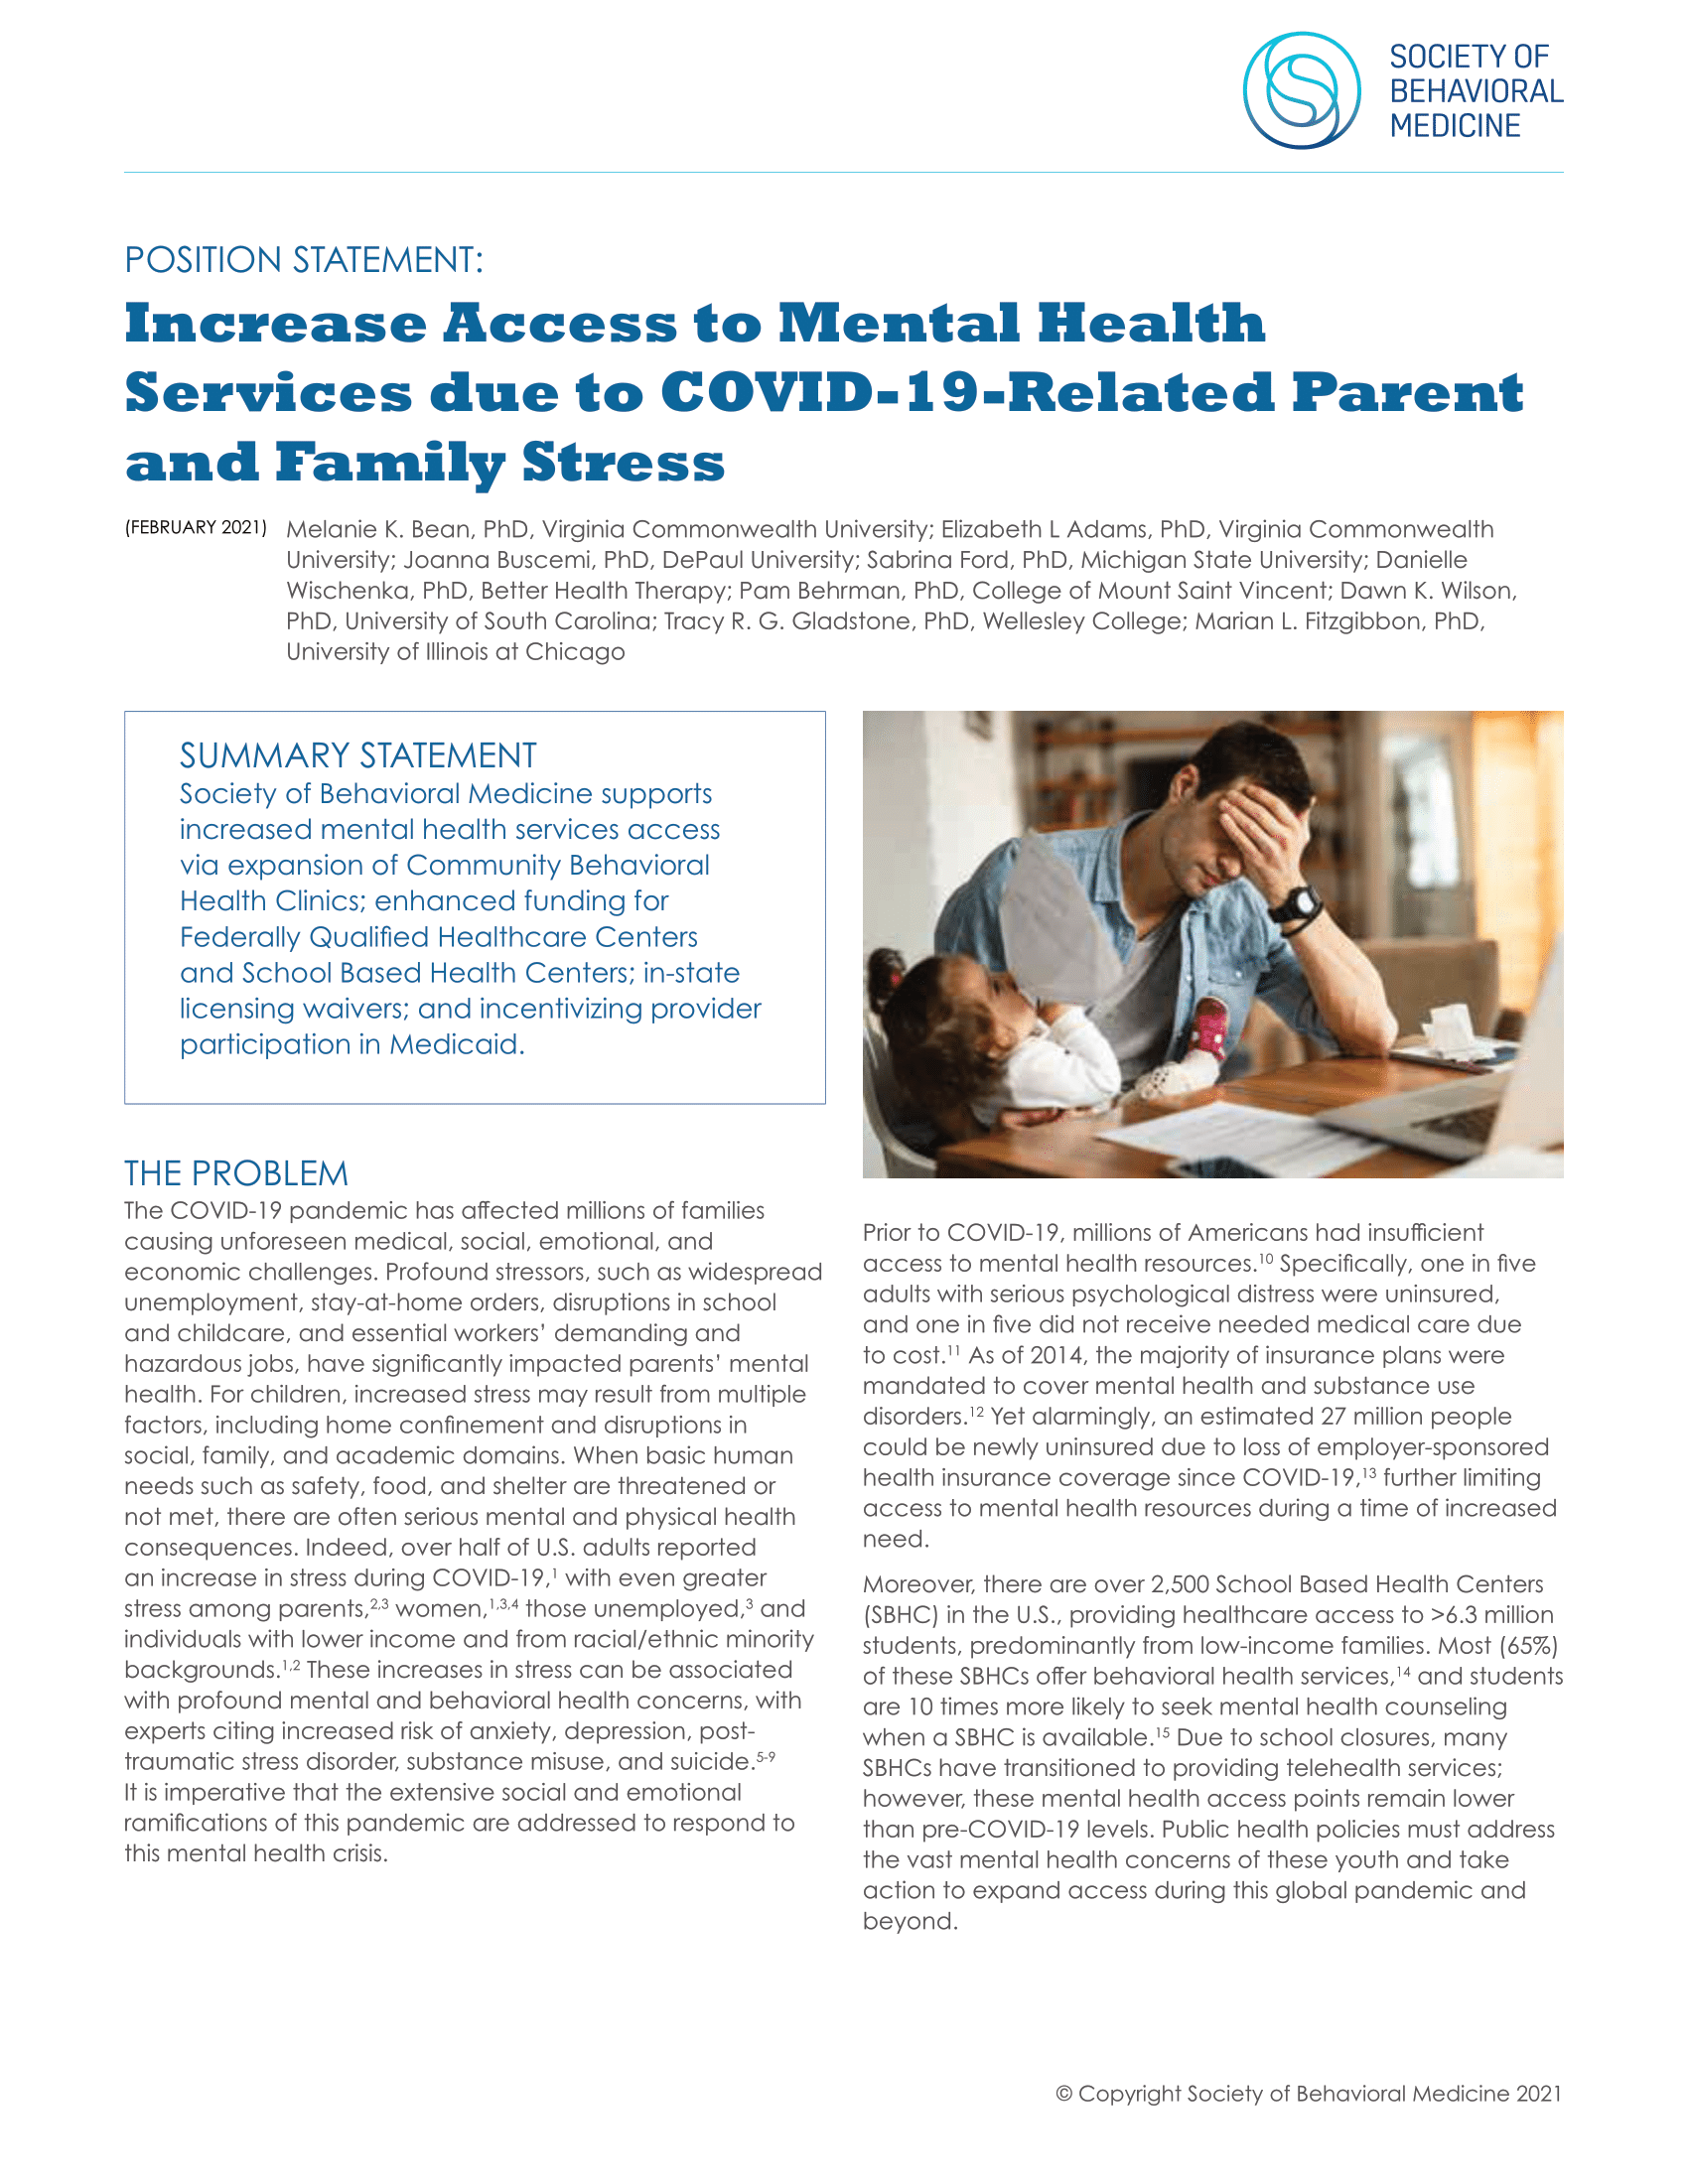 Increase Access to Mental Health Services due to COVID-19-Related Parent and Family Stress